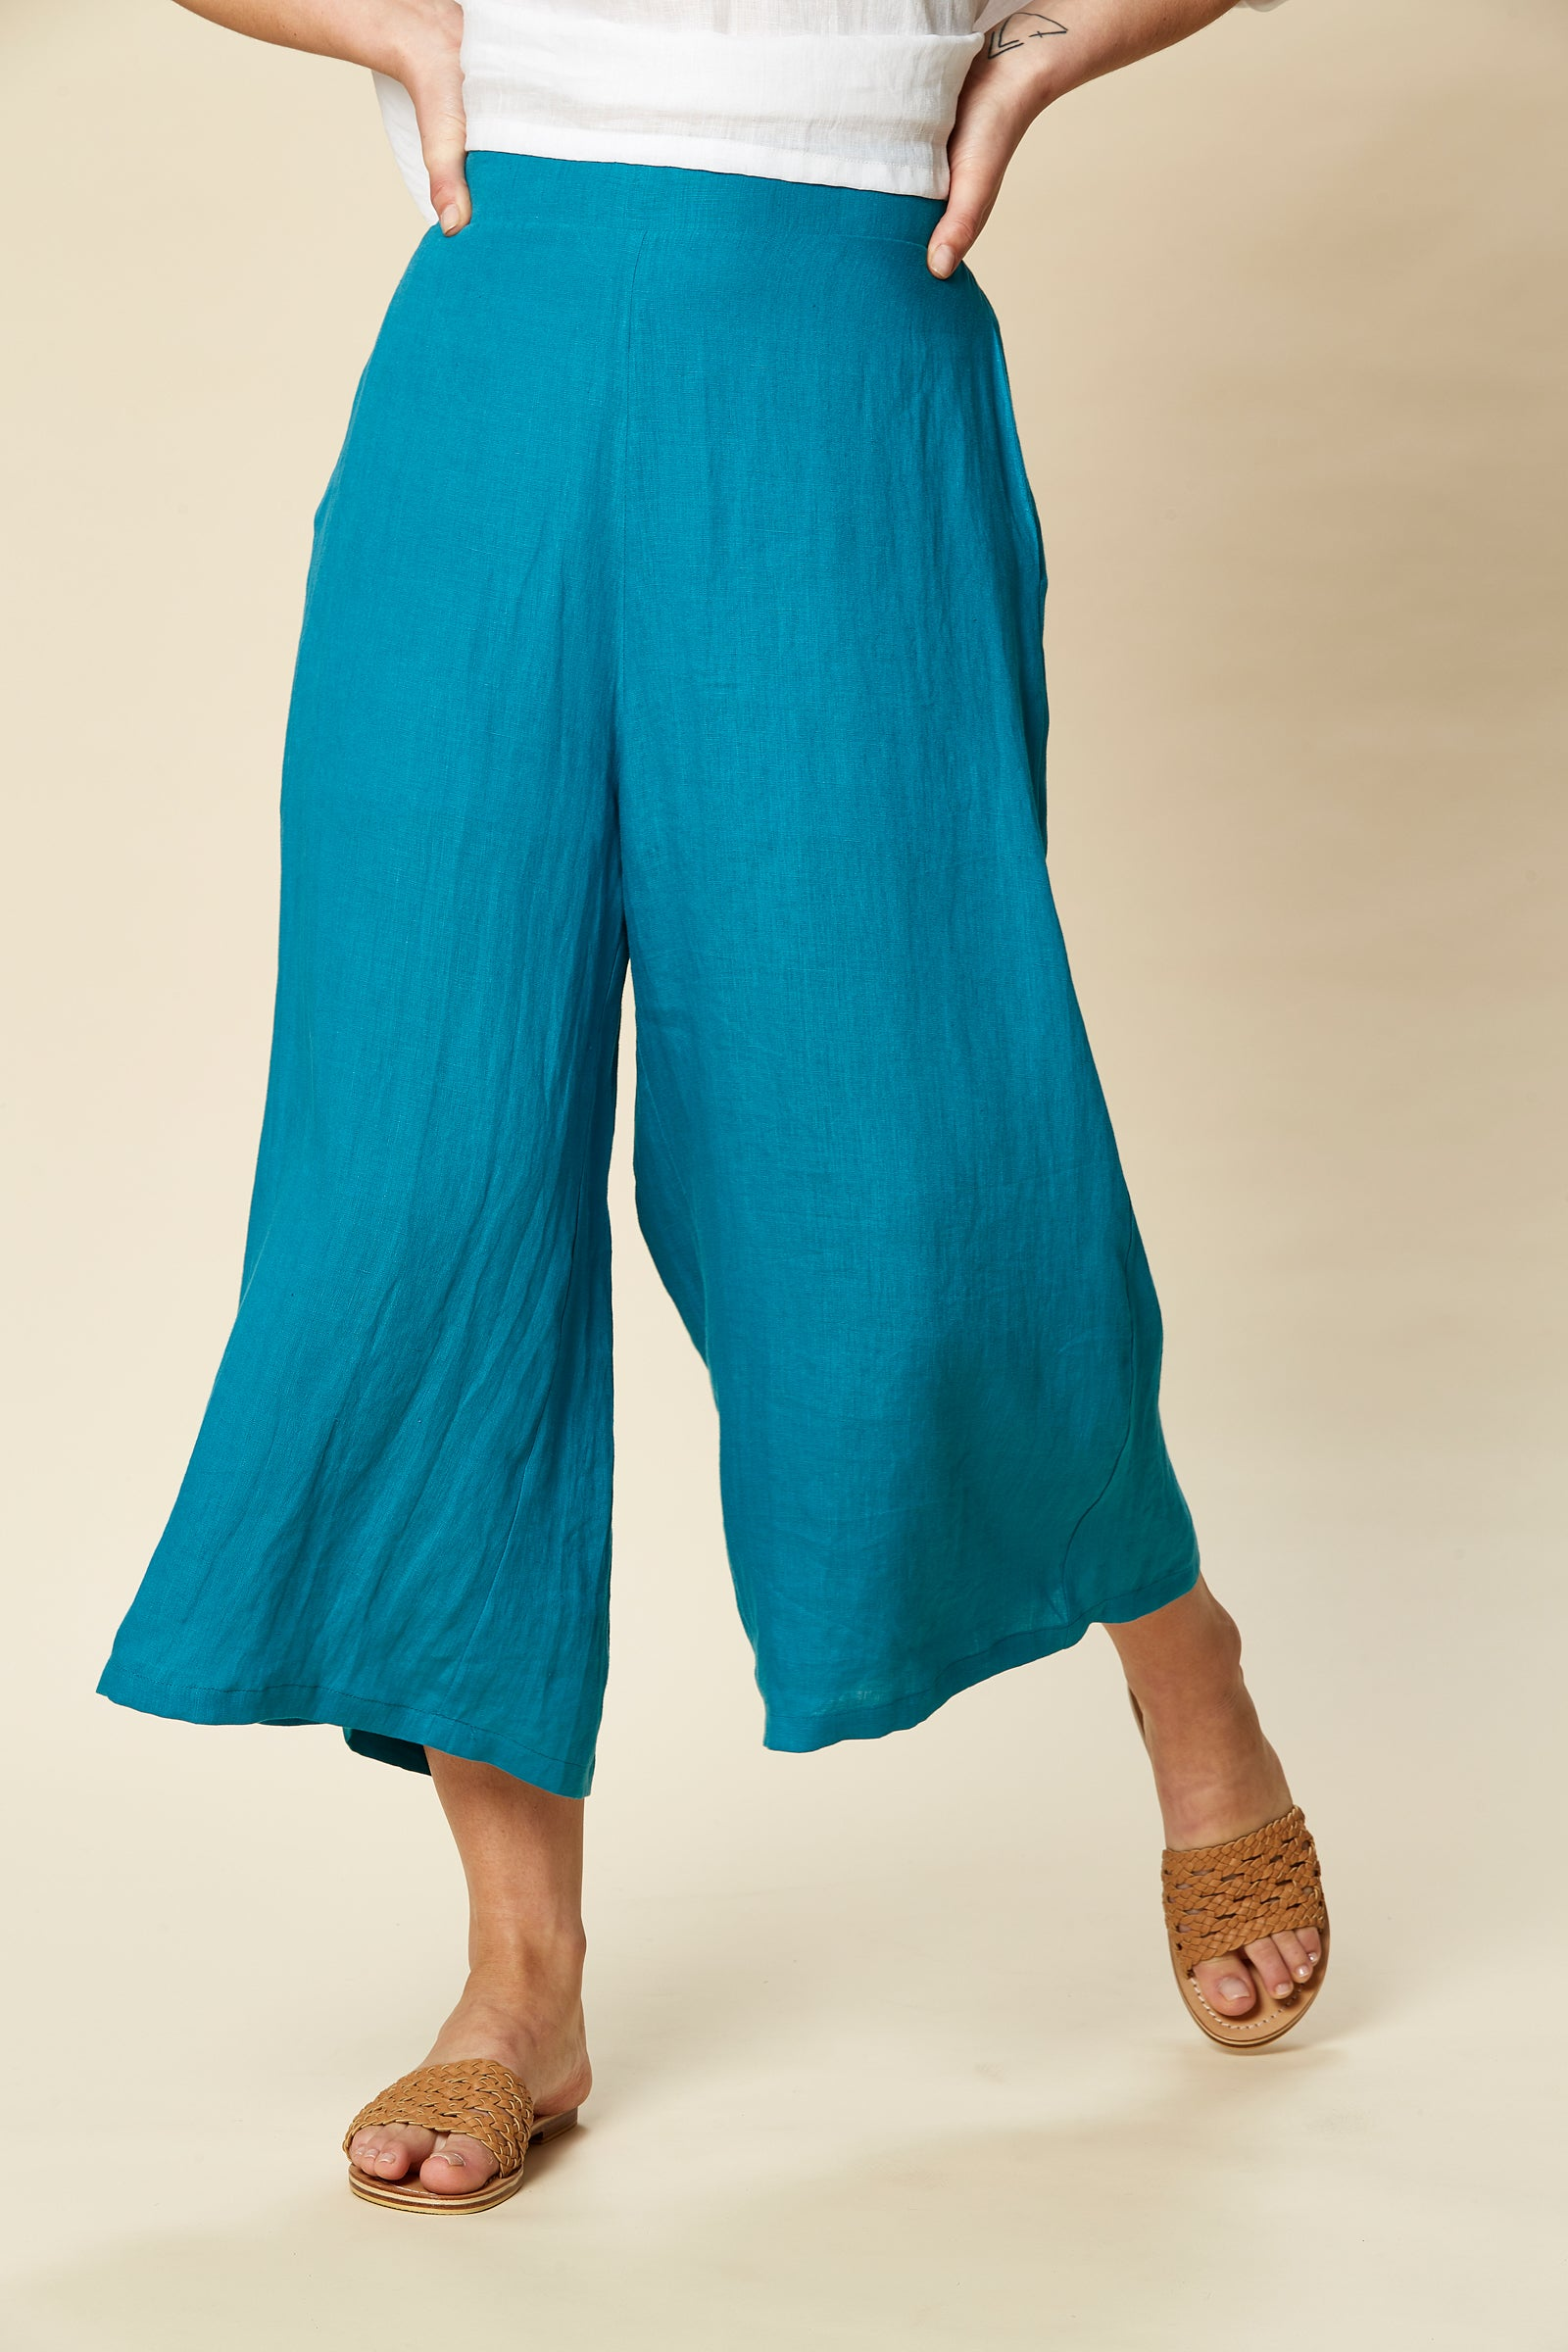 Tribu Pant - Cyan - eb&ive Clothing - Pant Relaxed Linen